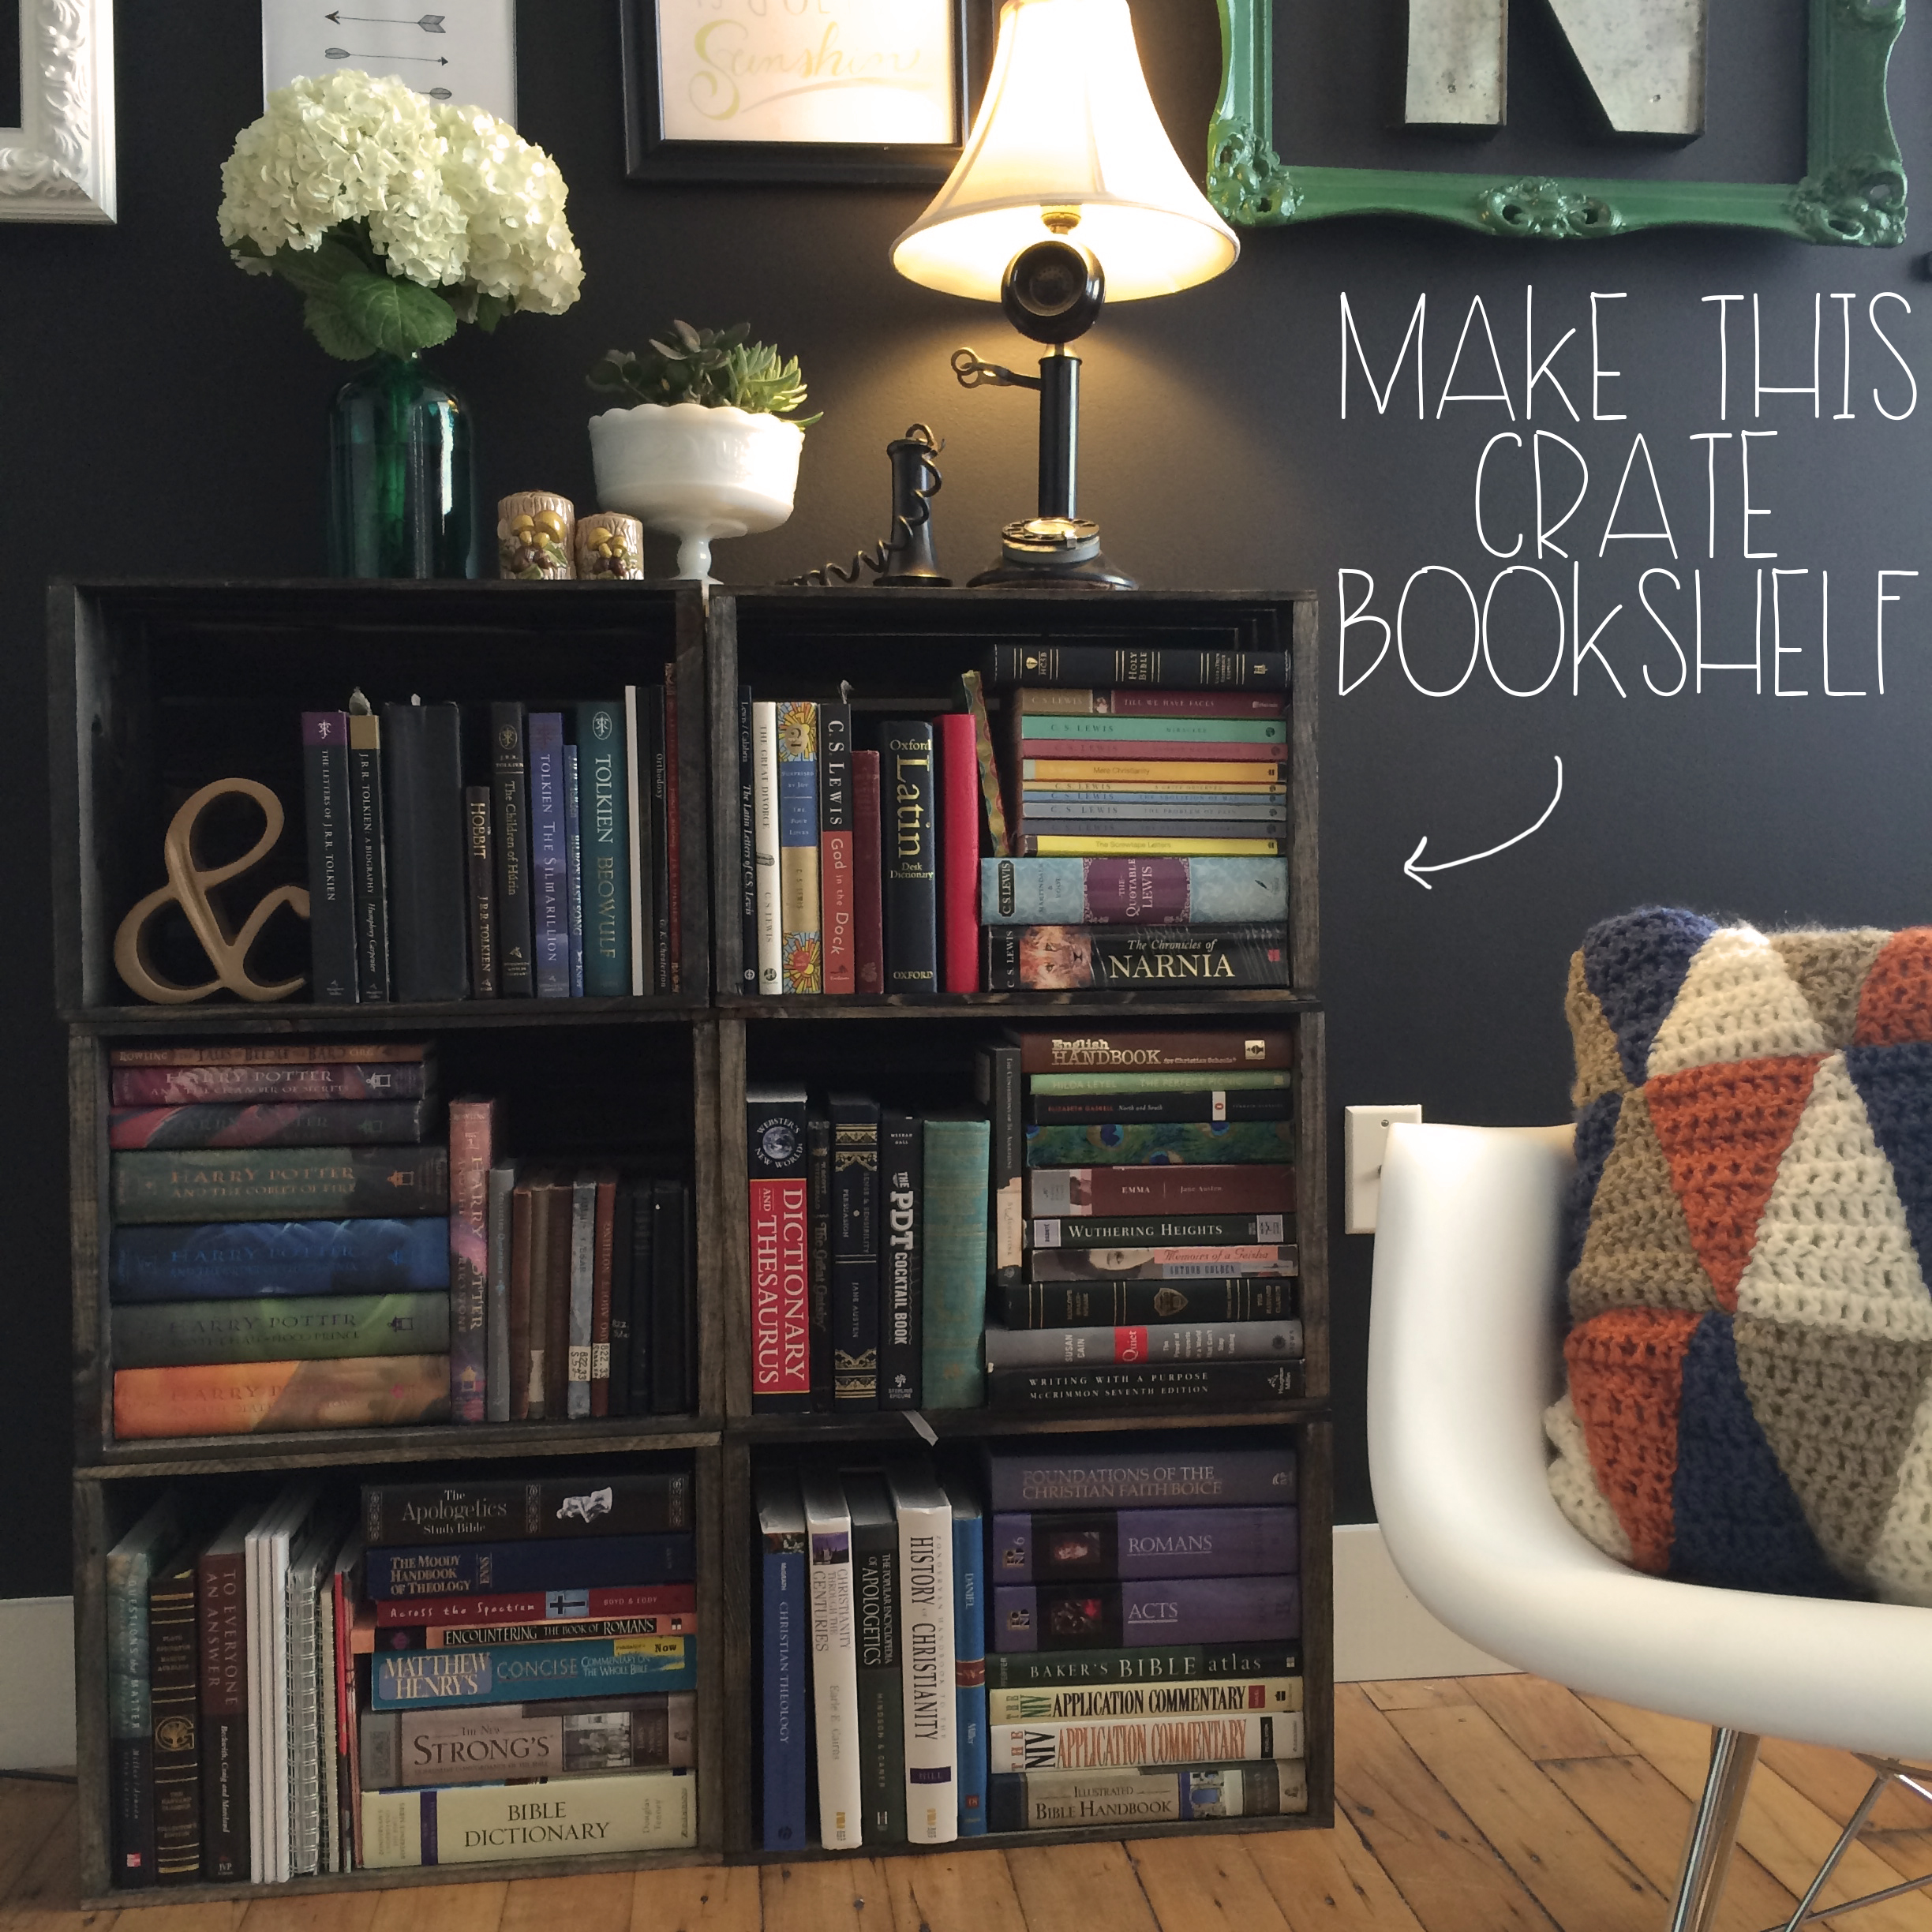 Make This Crate Bookshelf | MrsAmberApple